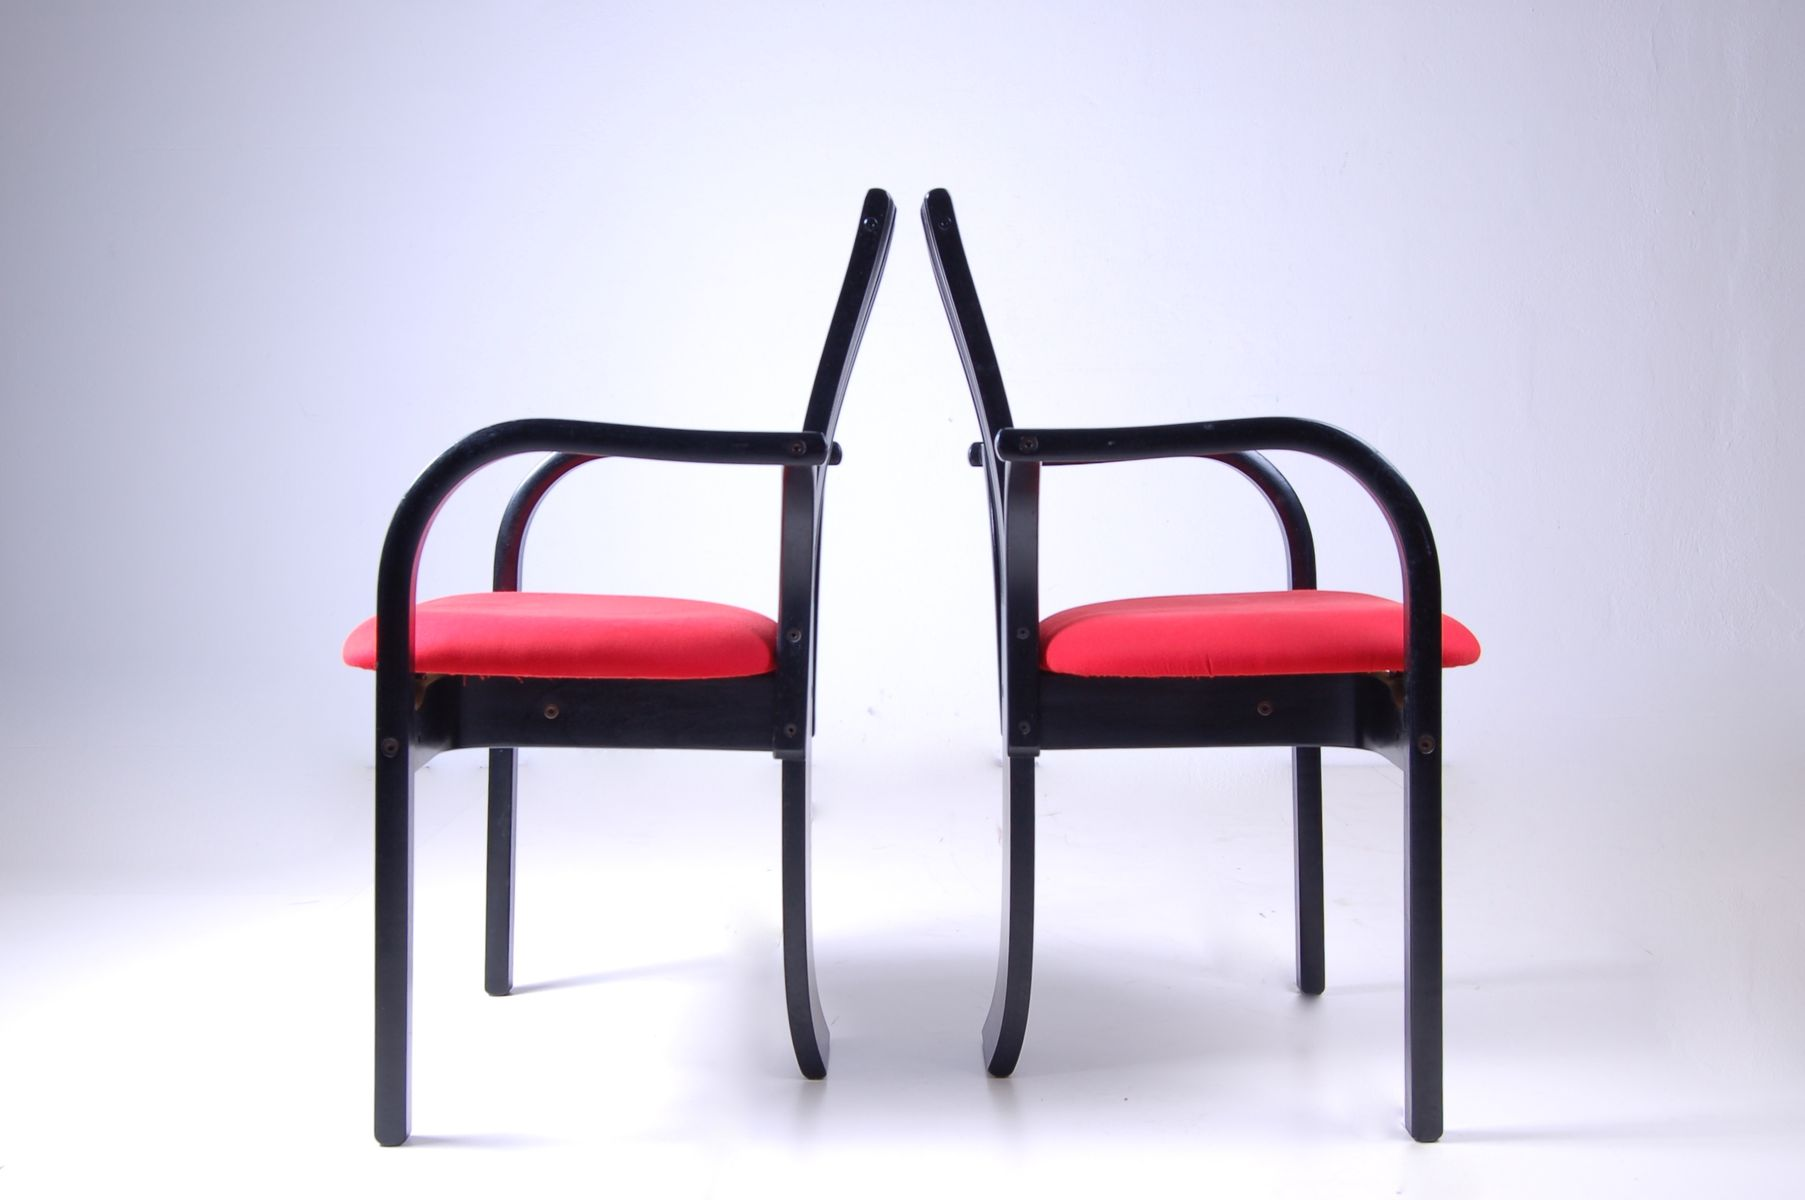 Vintage black red dining chairs set of 2 for sale at pamono for Red dining chairs for sale